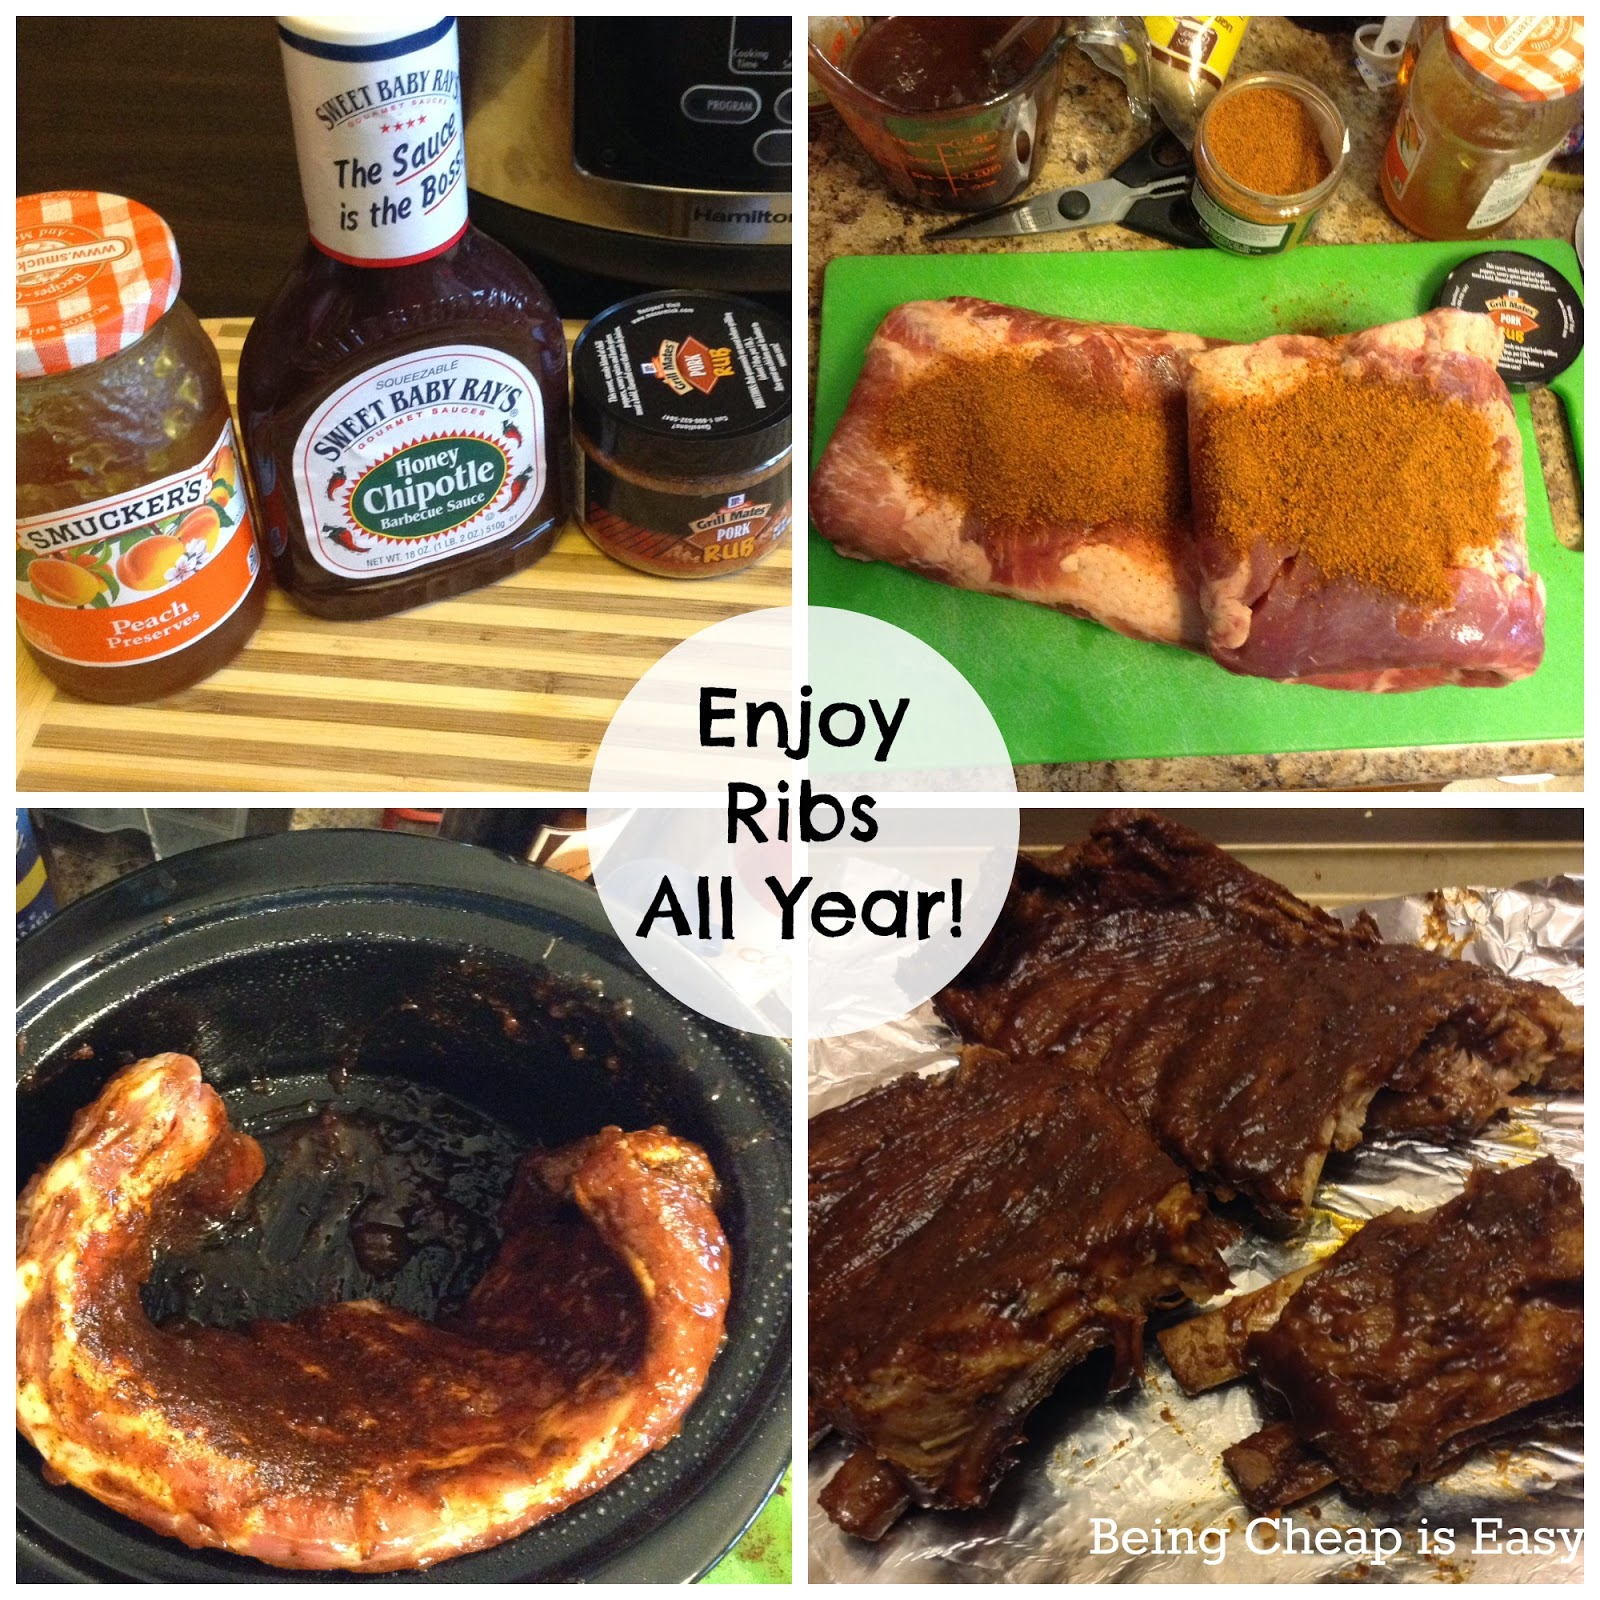 #SlowCookerMeals, Ribs, BBQ, Sweet Baby Ray's, Chipolte, Smuckers